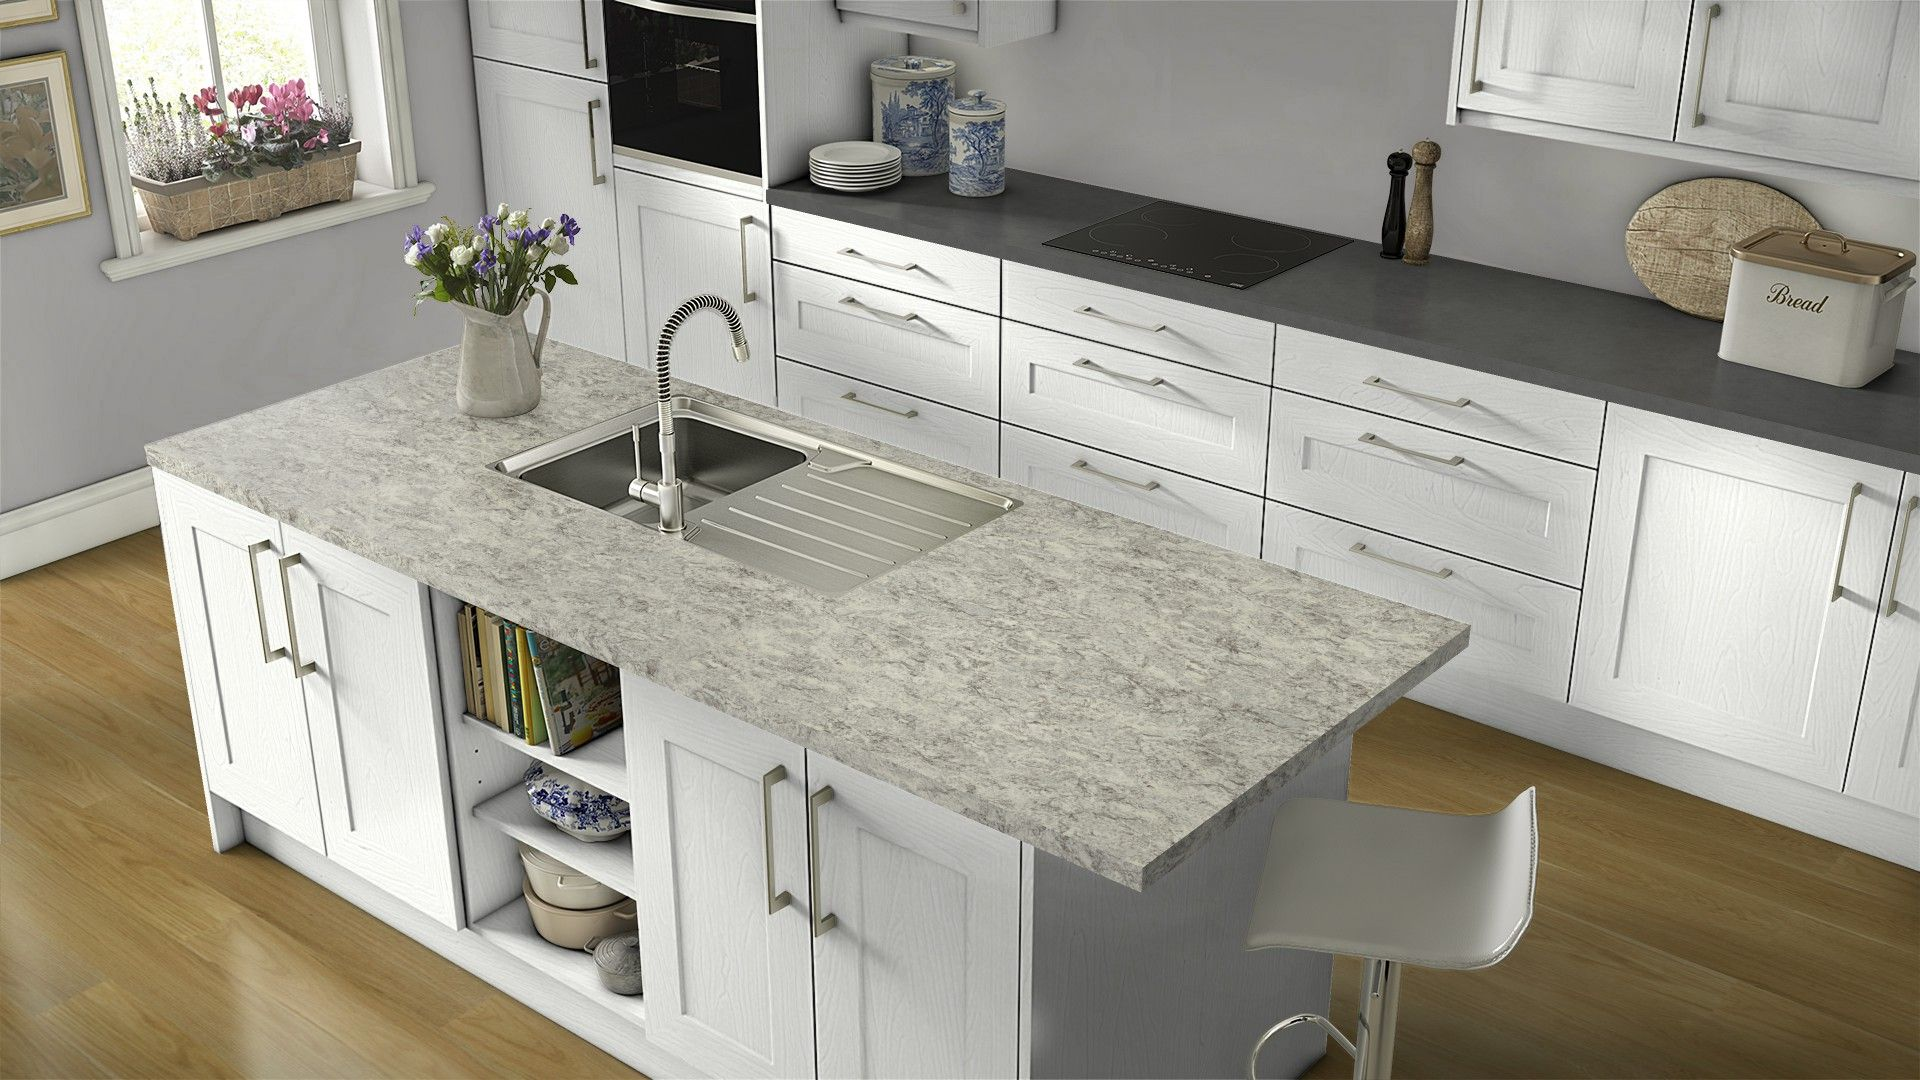 Get Inspired For Your Kitchen Renovation With Wilsonart S Free Visualizer